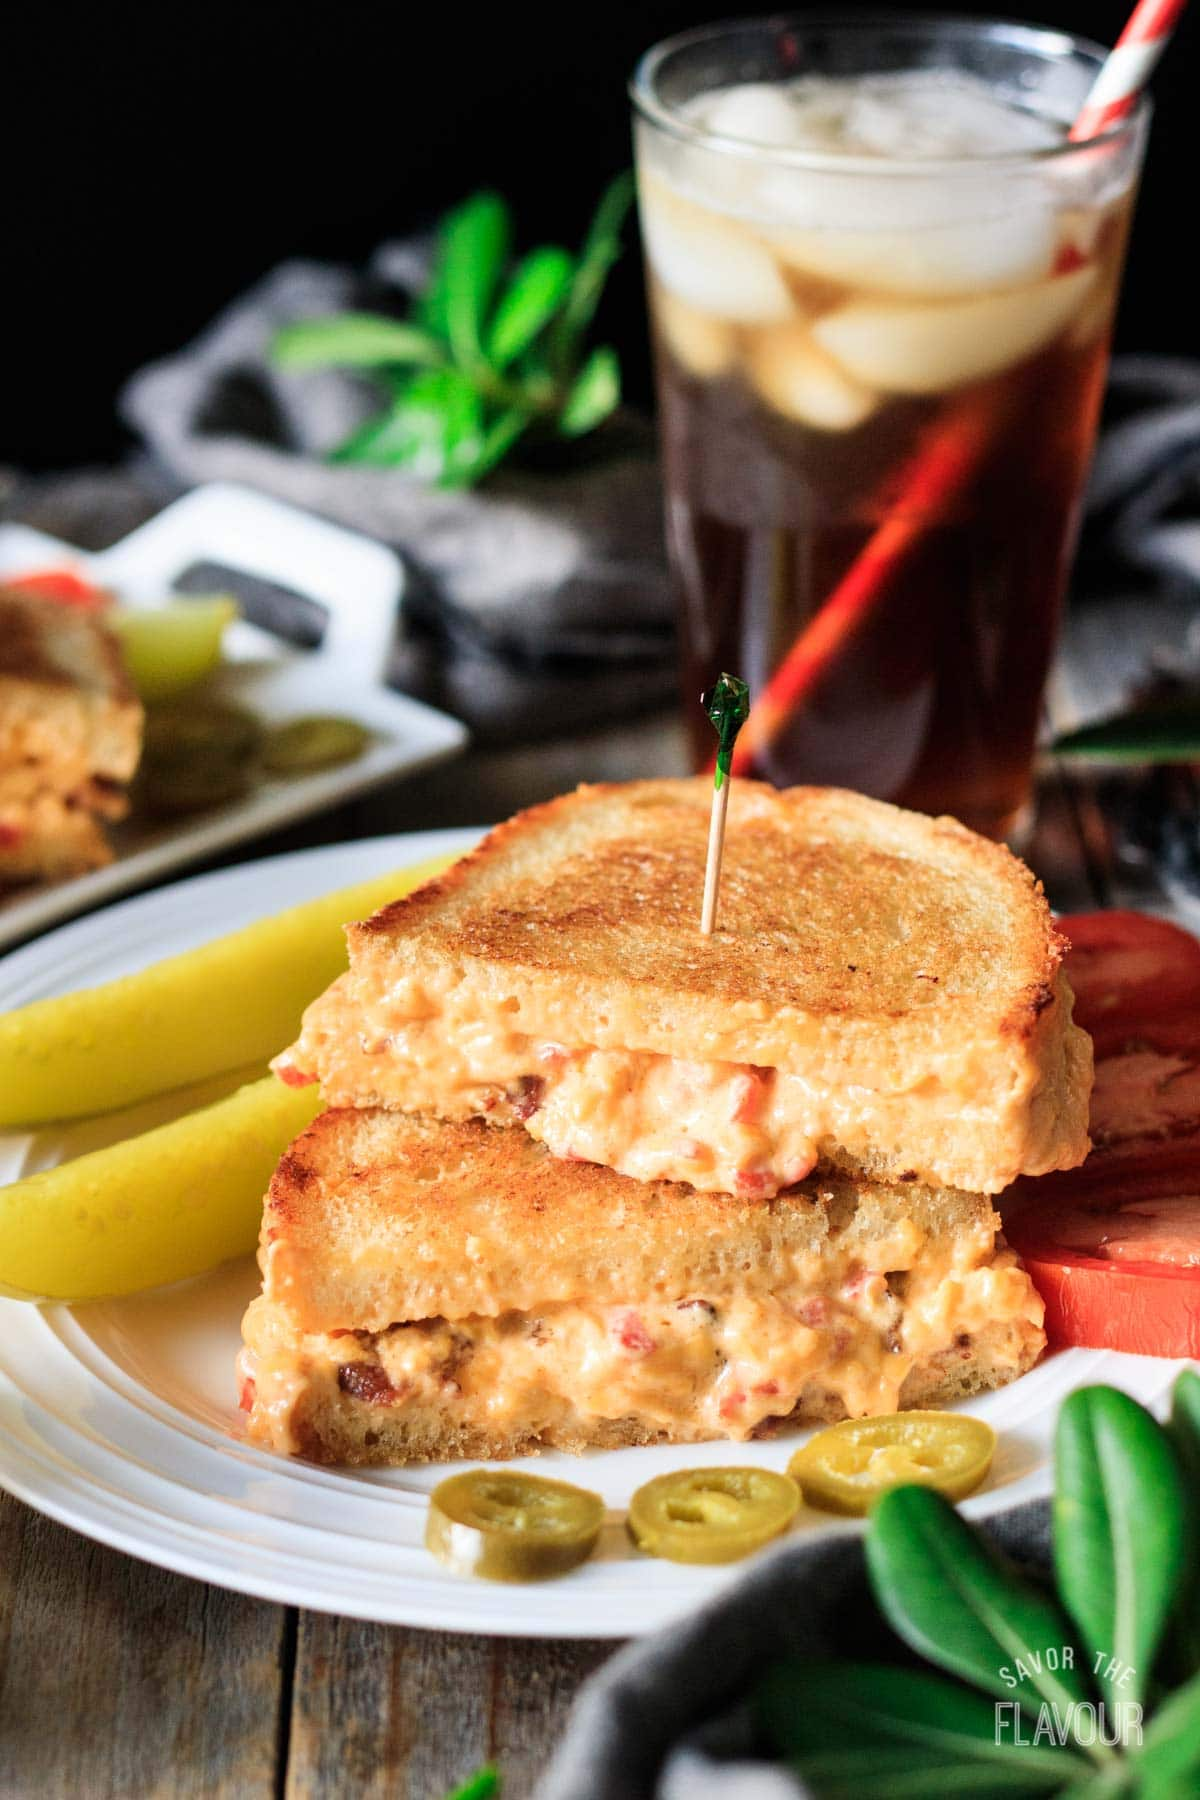 pimento cheese sandwich with pickles and sweet tea